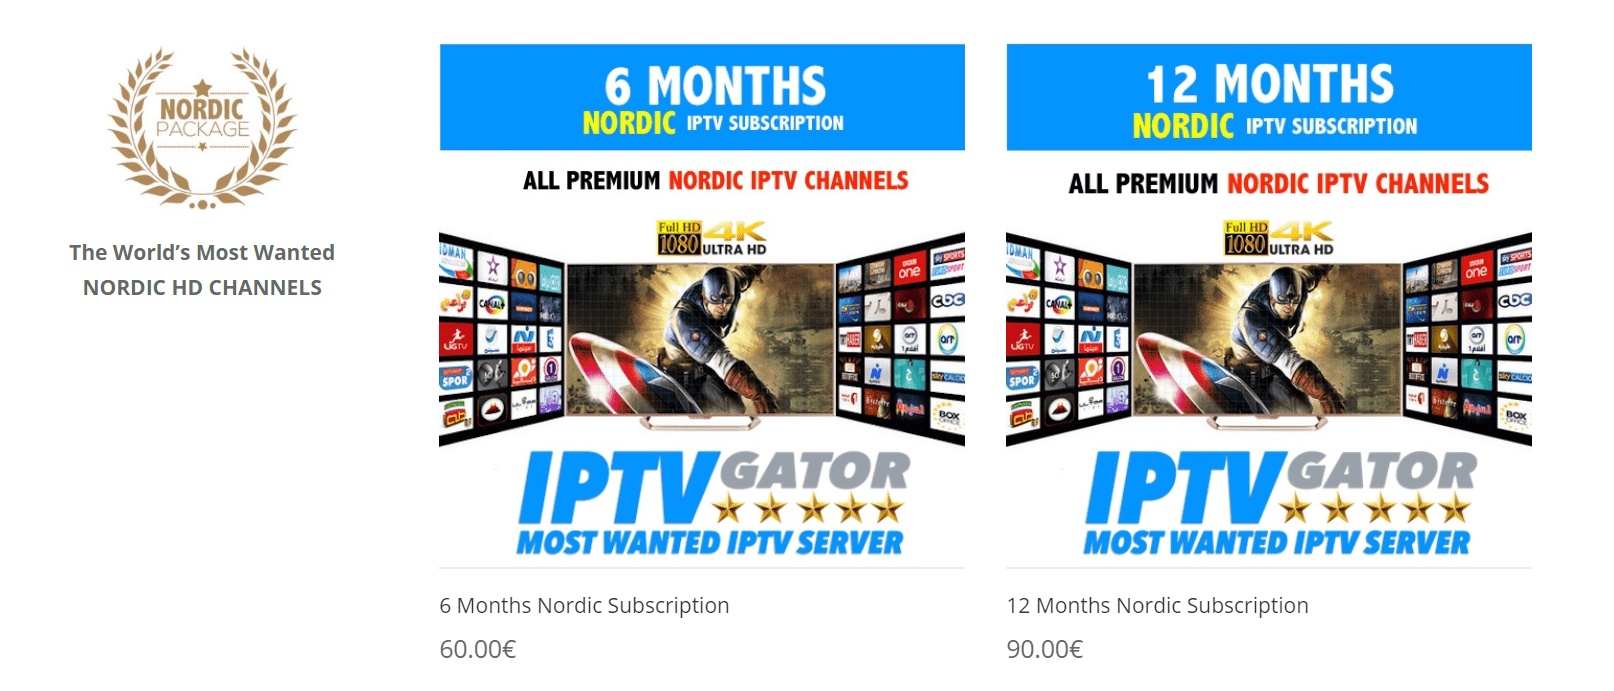 sss Iptv Gator - The Best Worldwide IPTV provider